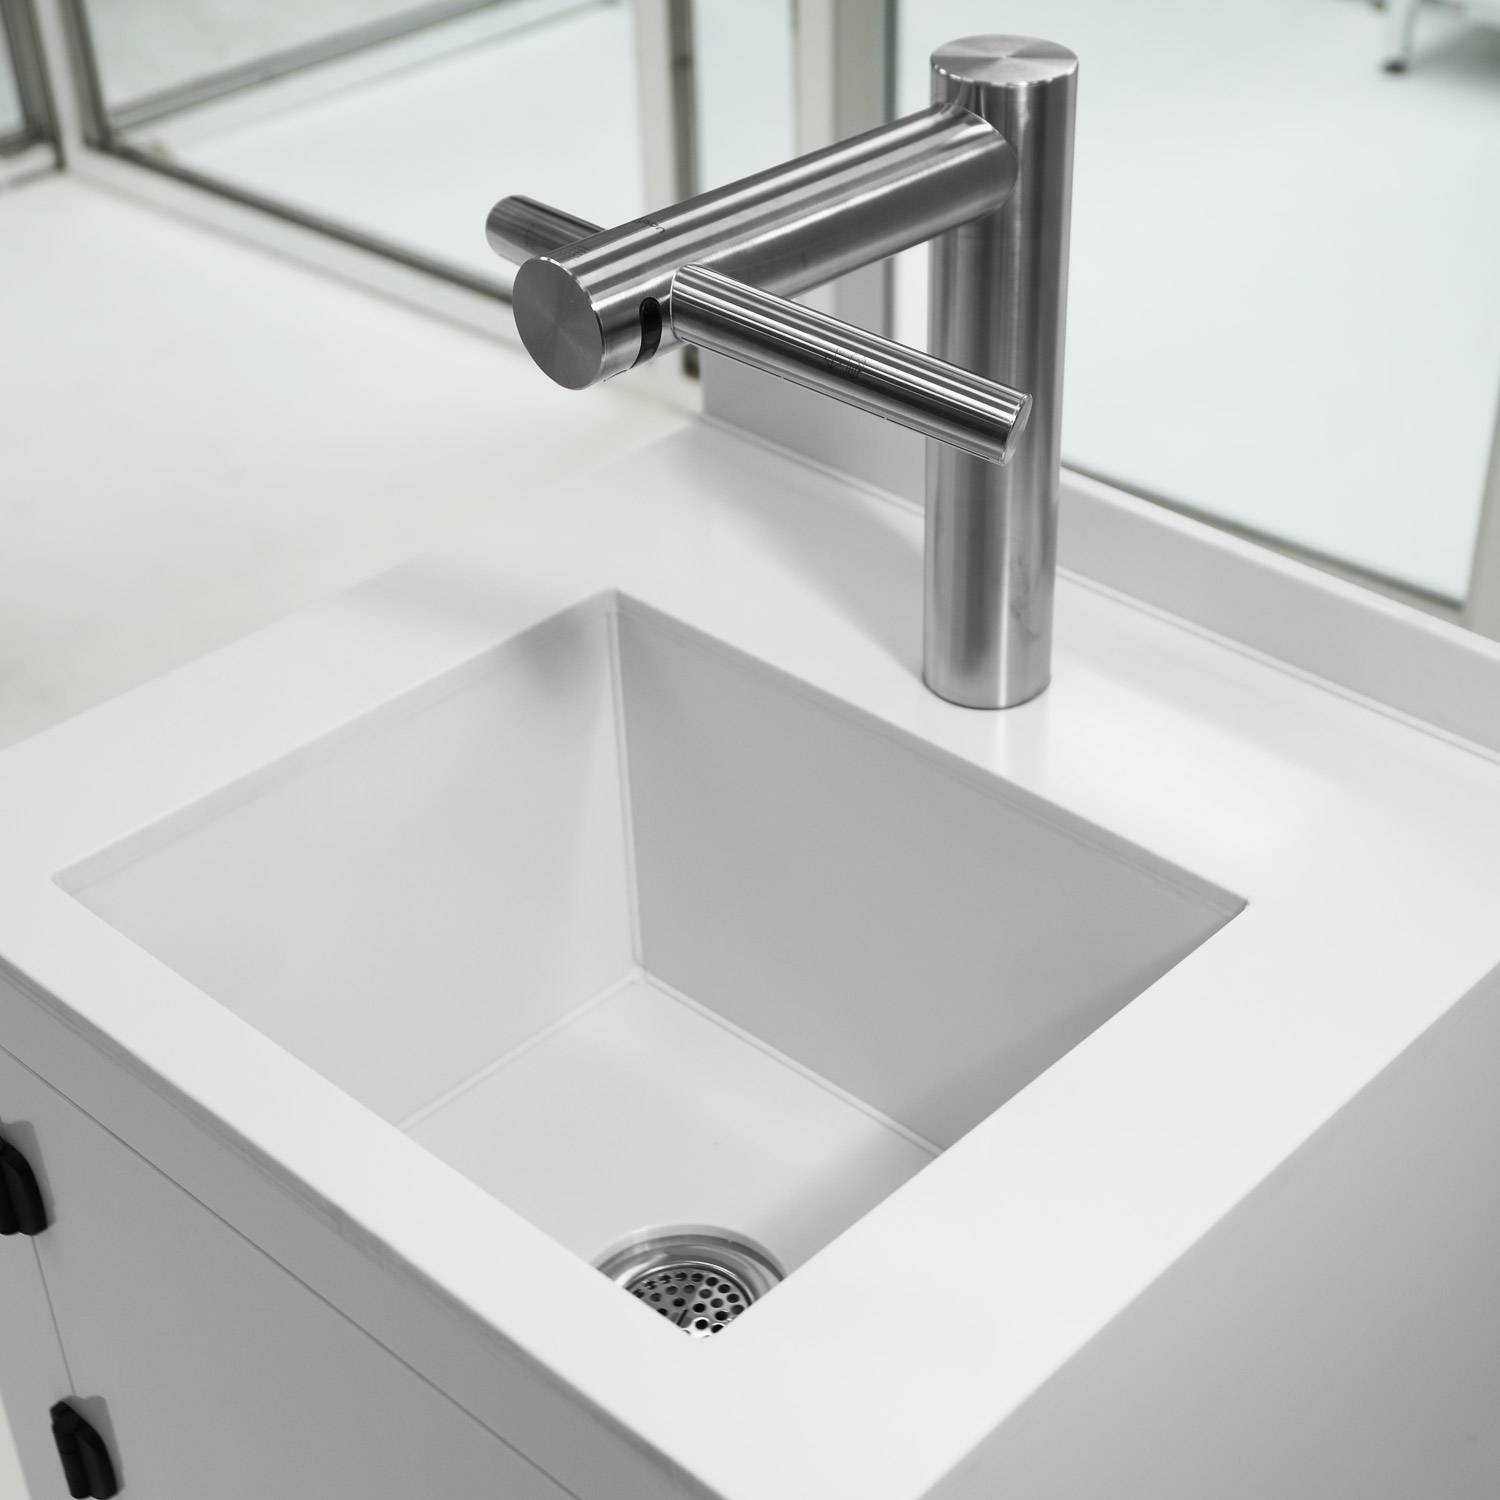 Hands-Free Sink and Hand Dryer Polypropylene